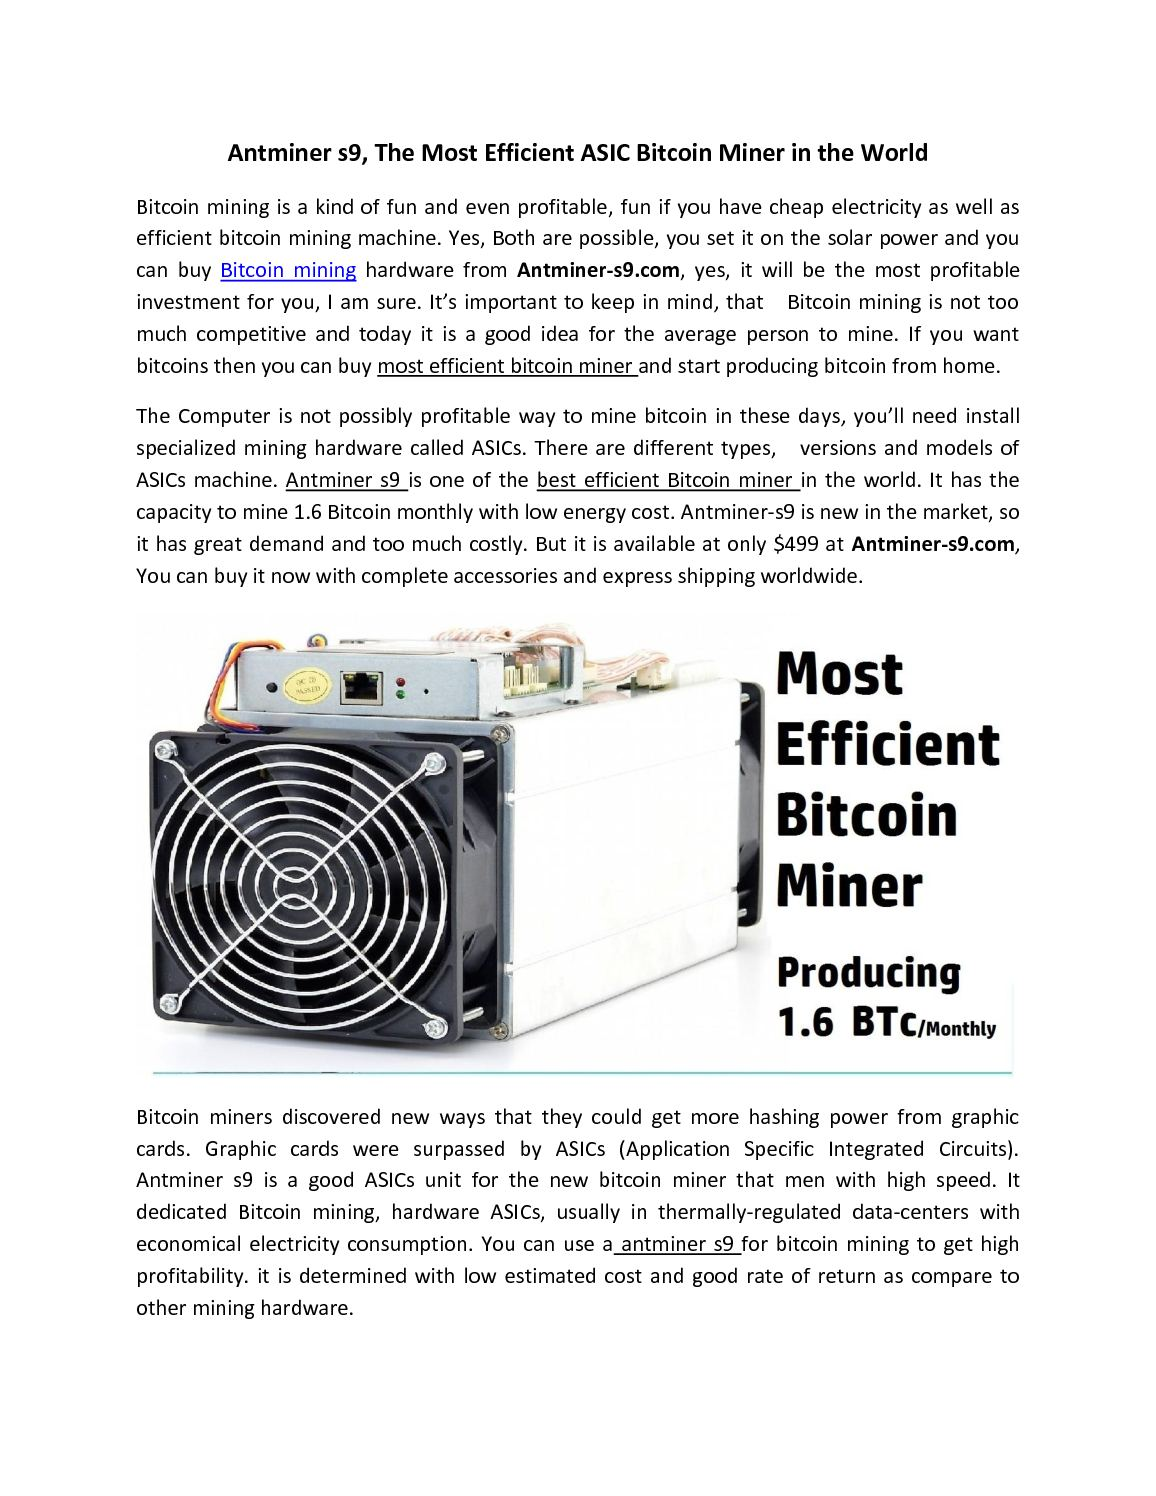 Calaméo - Antminer S9, The Most Efficient Asic Bitcoin Miner